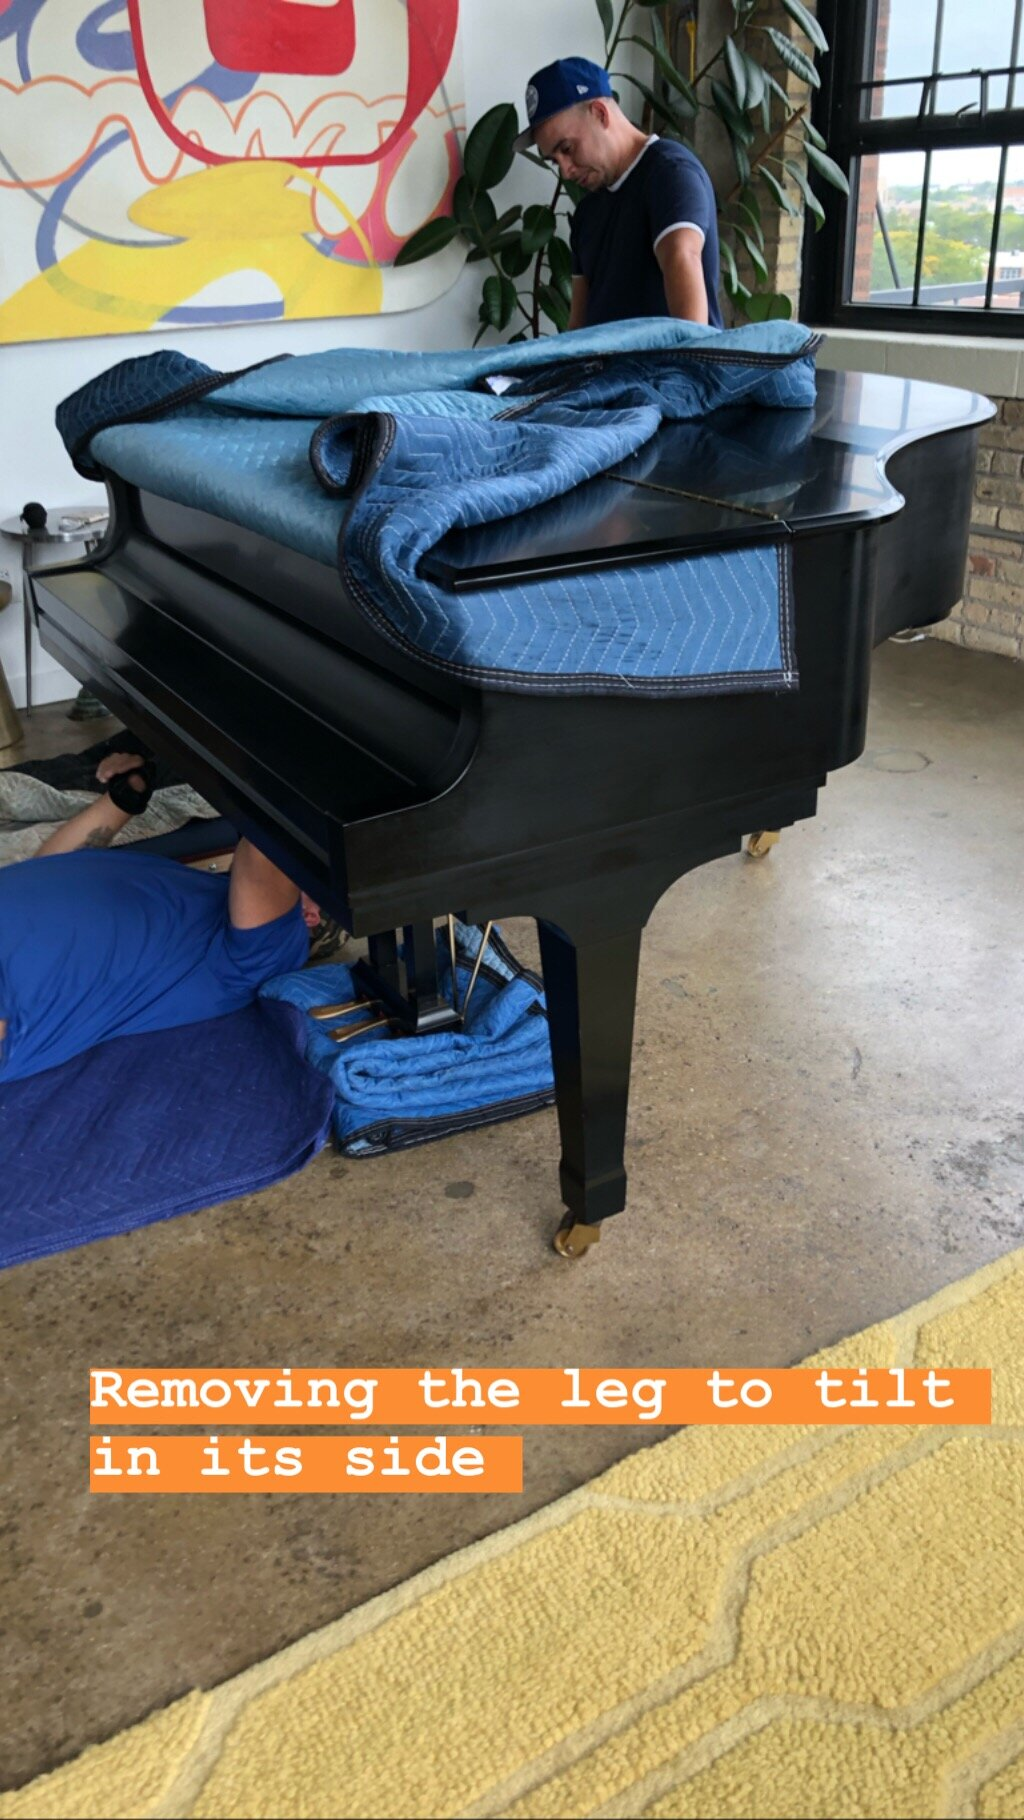 Starting with the 5'4''. They remove the left top leg first to safely tilt the piano on its side.